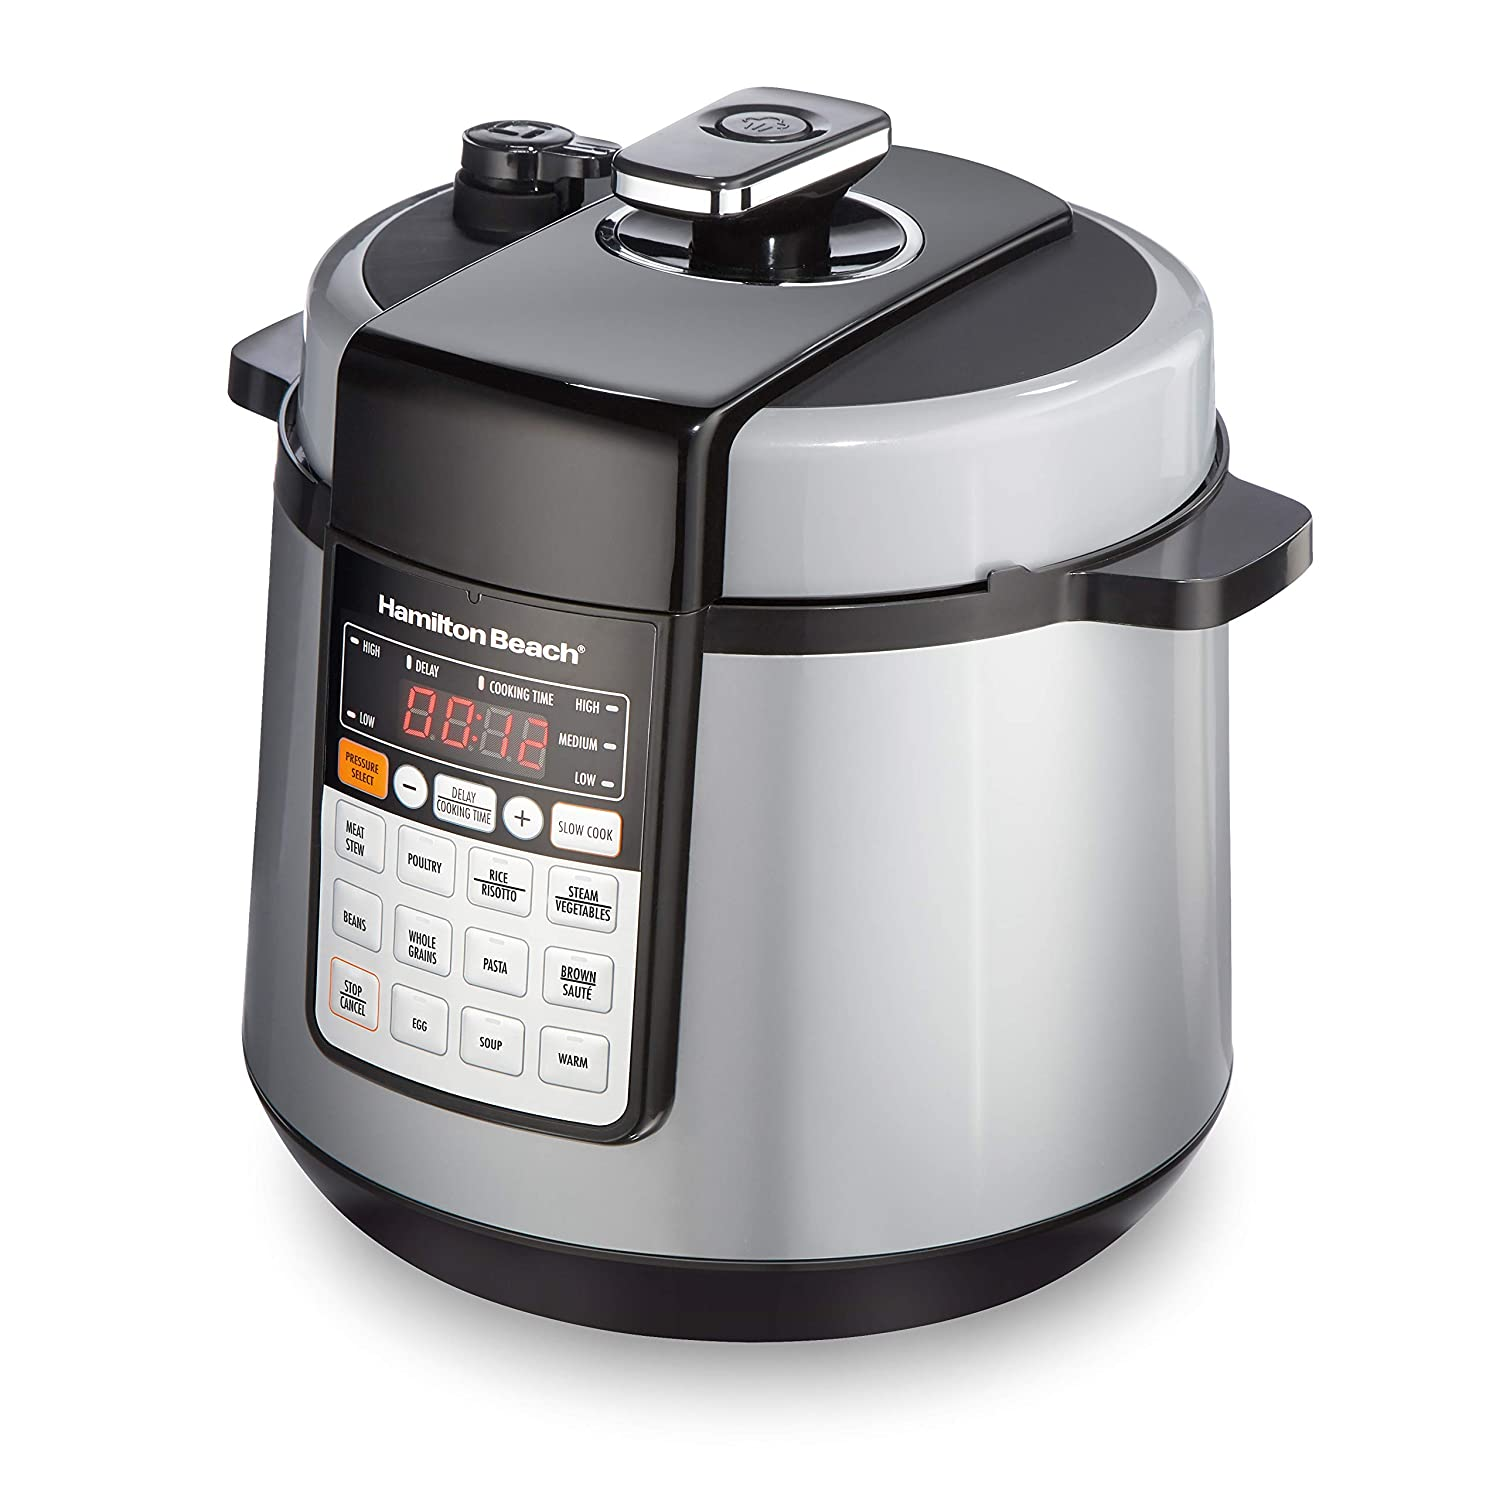 Hamilton Beach 34500 Multi-Function Pressure Cooker 6 quart Stainless